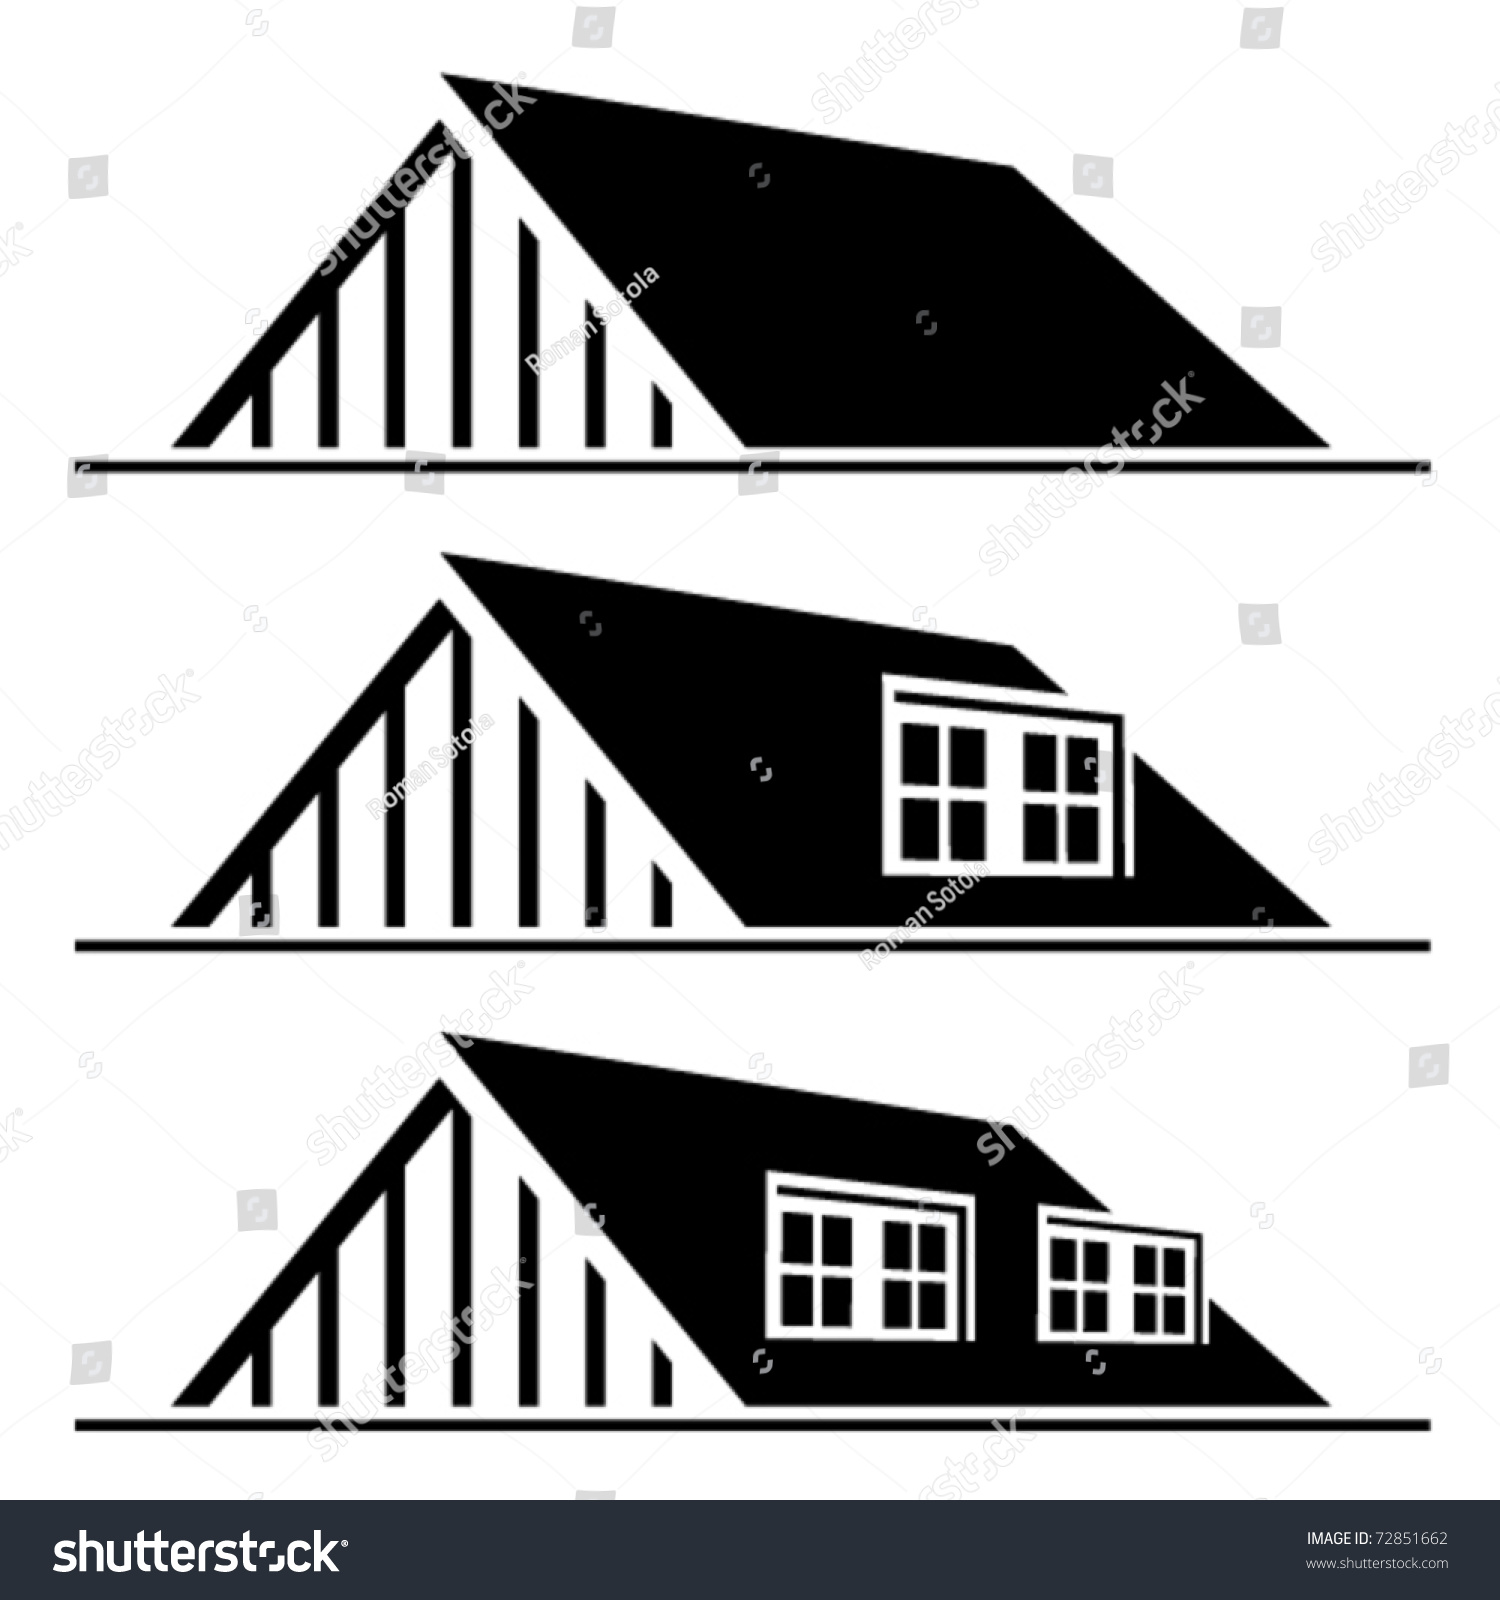 Vector Black House Roof Silhouettes Stock Vector 72851662